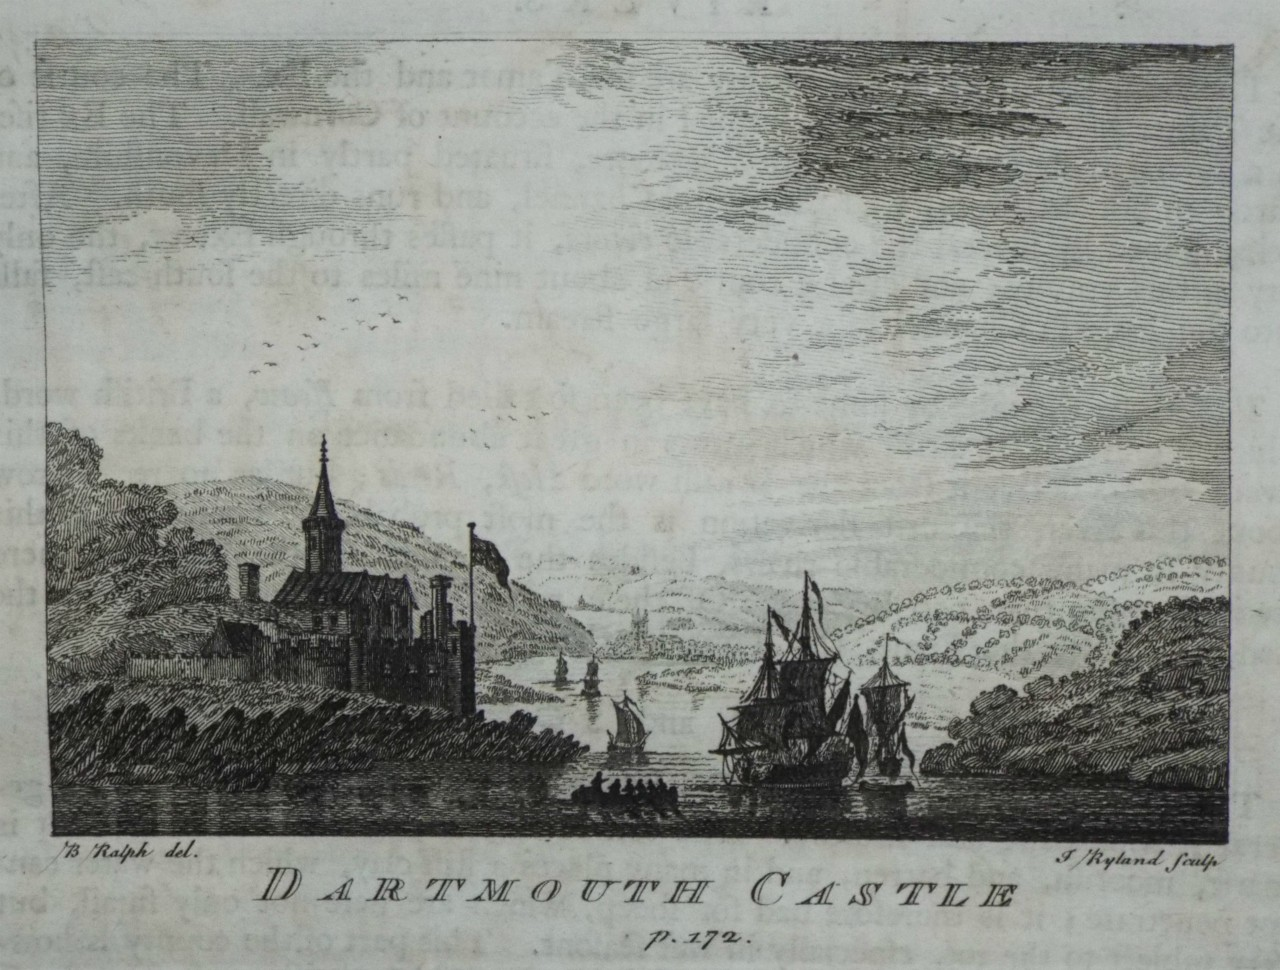 Print - Dartmouth Castle p.172. - Ryland